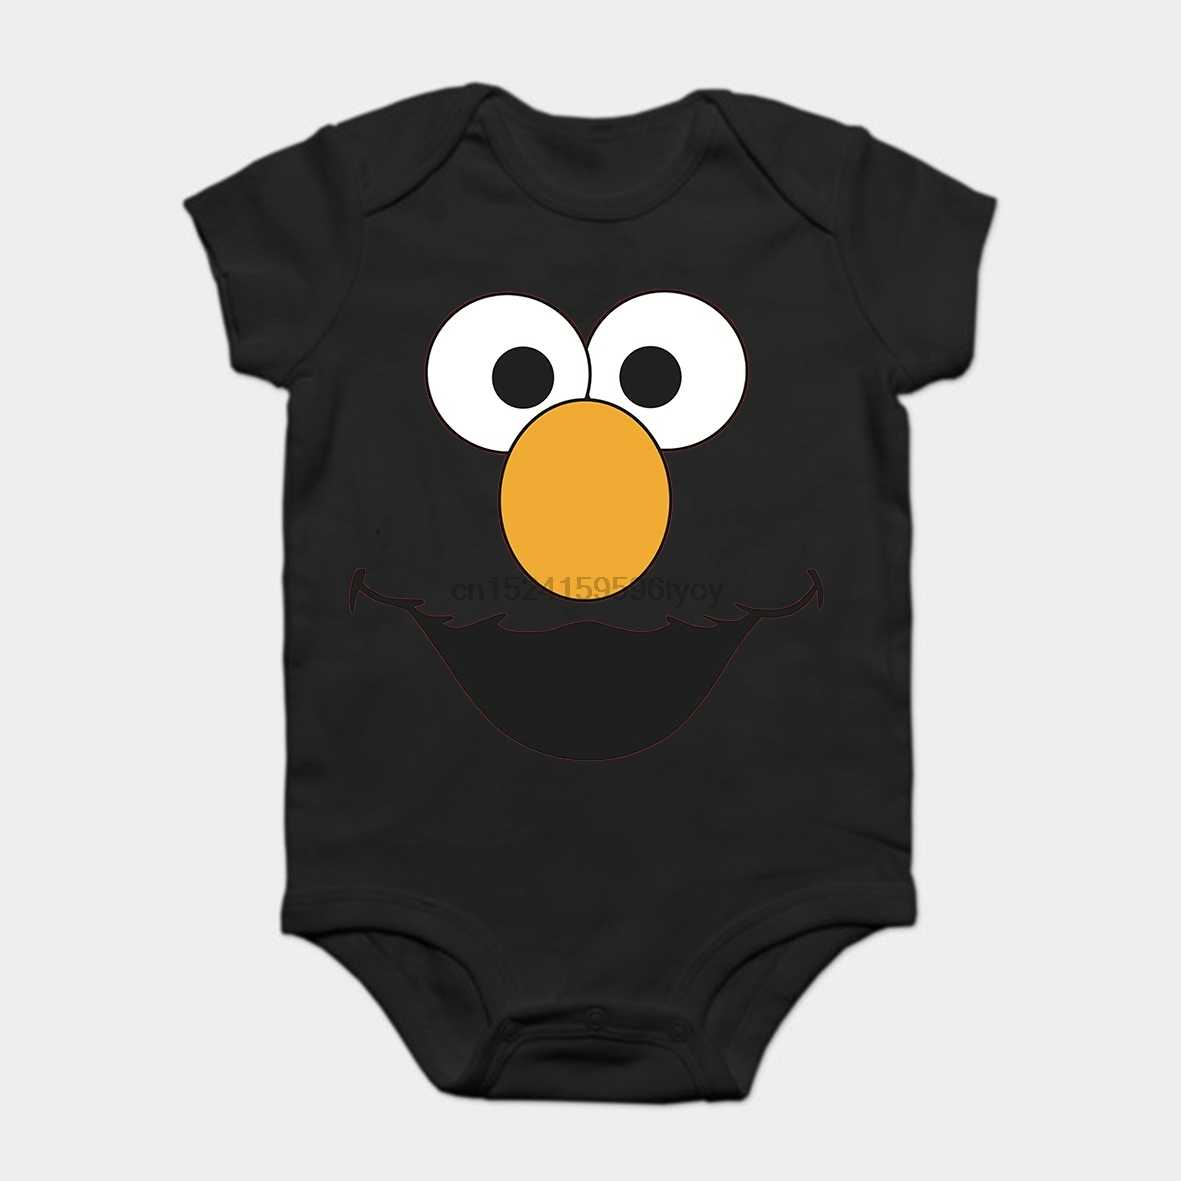 eceae591a Detail Feedback Questions about Baby Onesie Baby Bodysuits kid t shirt  Funny white Black tee Adult Show Sesame Street Elmo Smiling Face Red on ...